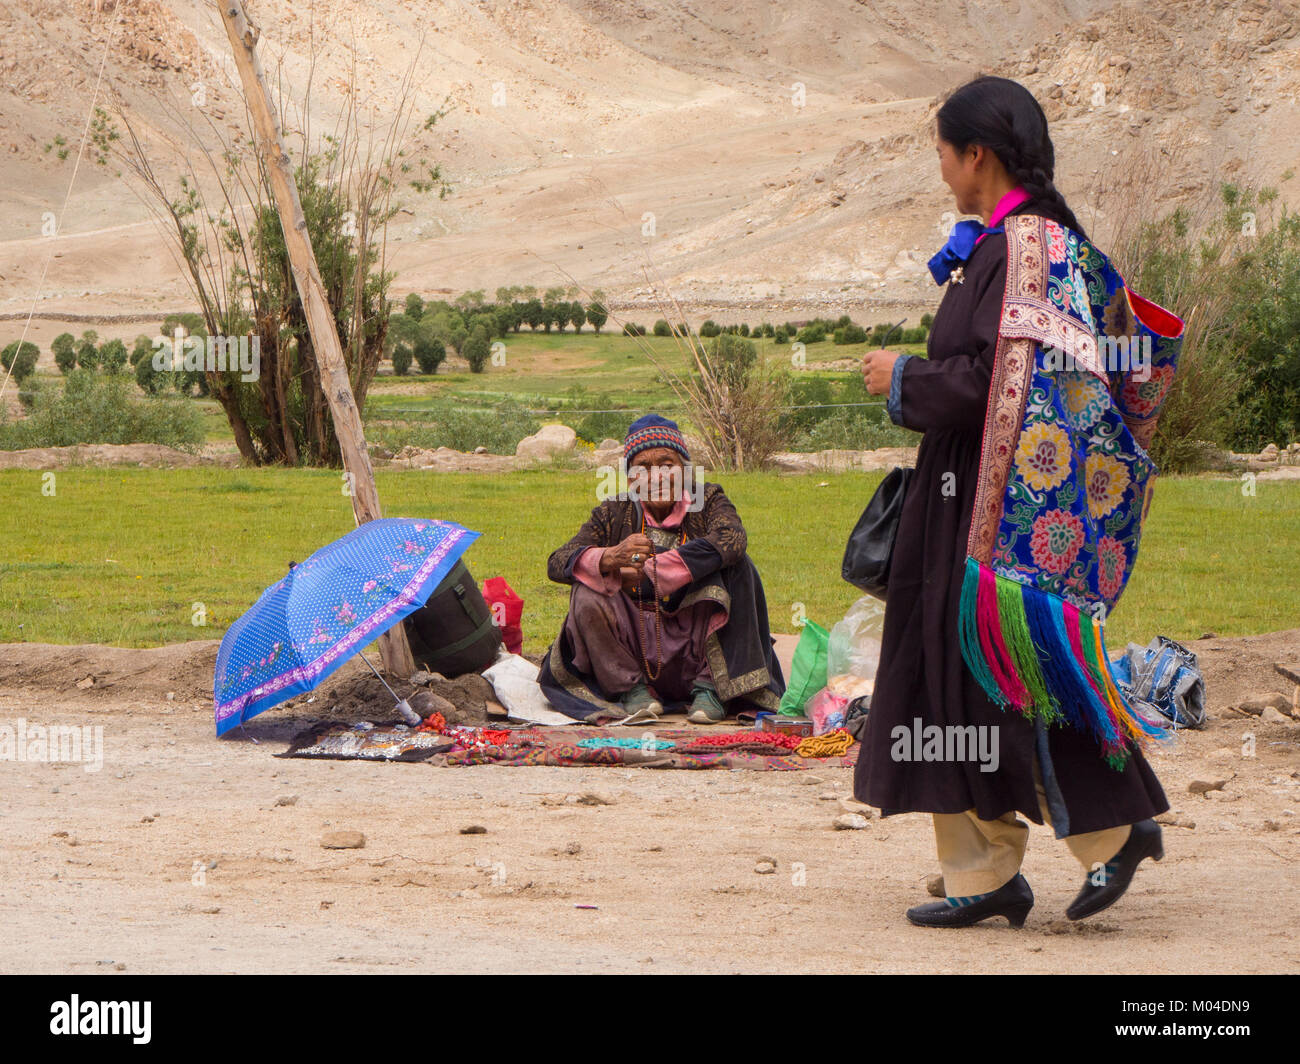 A Buddhist old-age rural woman peddler shows her merchandise in the market and a passerby buyer lady - Stock Image